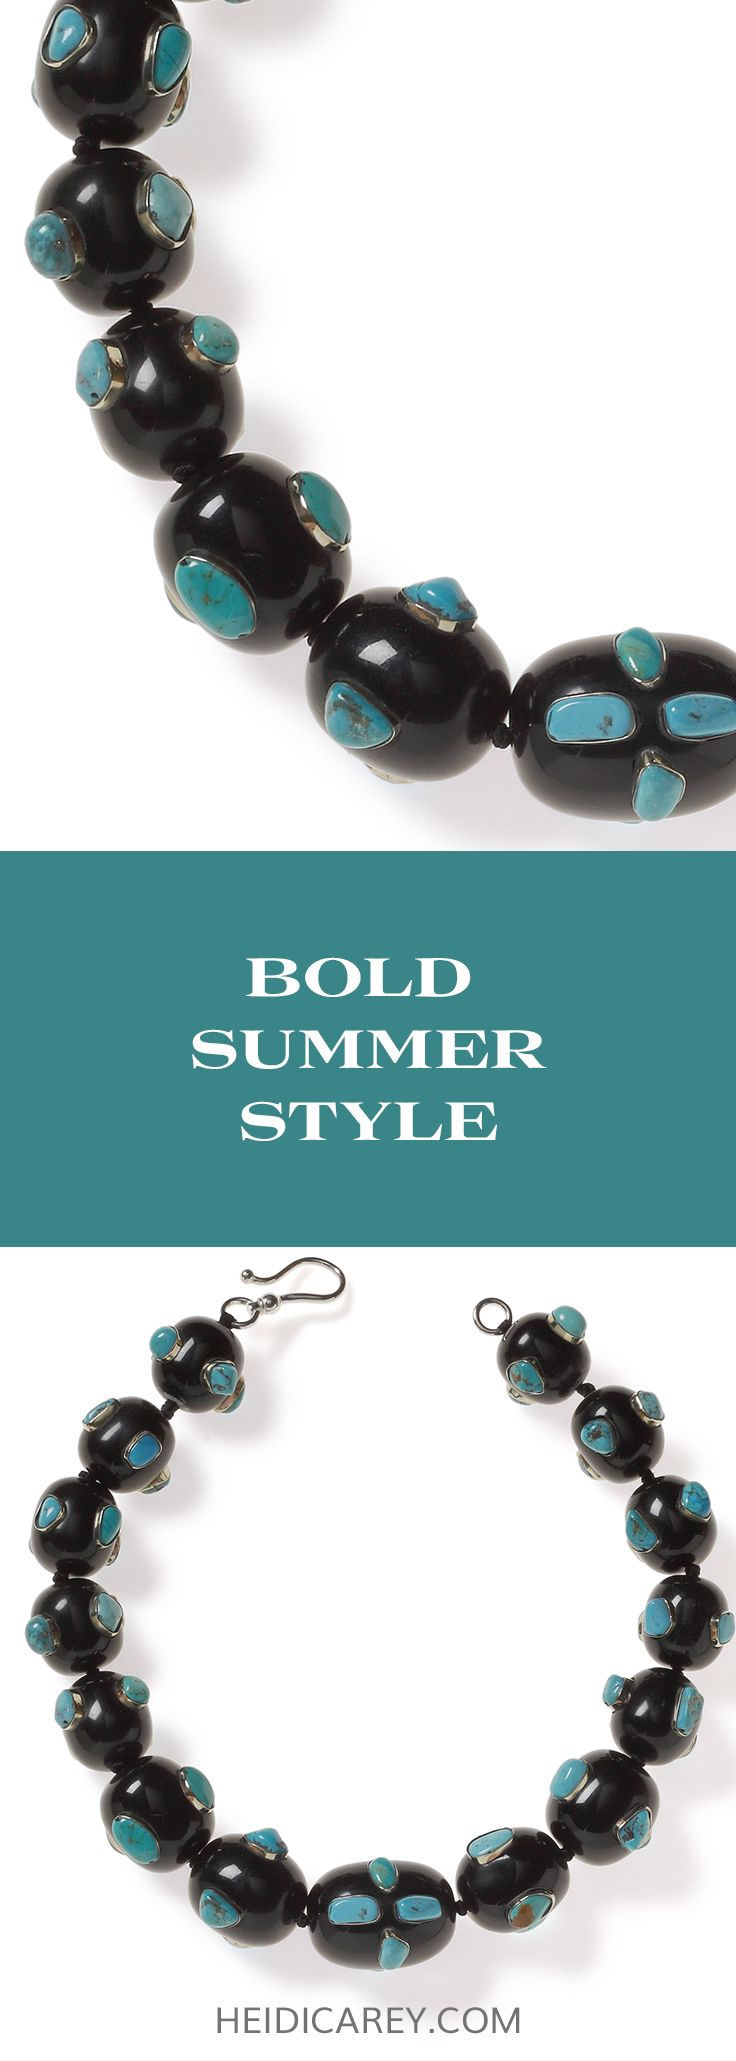 Bold summer fashion is effortless with this oversized bead necklace. Made with large black resin beads with inlaid silver holding turquoise gemstones, it's the perfect summer style statement.| Chunky statement necklace | Oversized Necklace | Big Bead Necklace | Turquoise Necklace